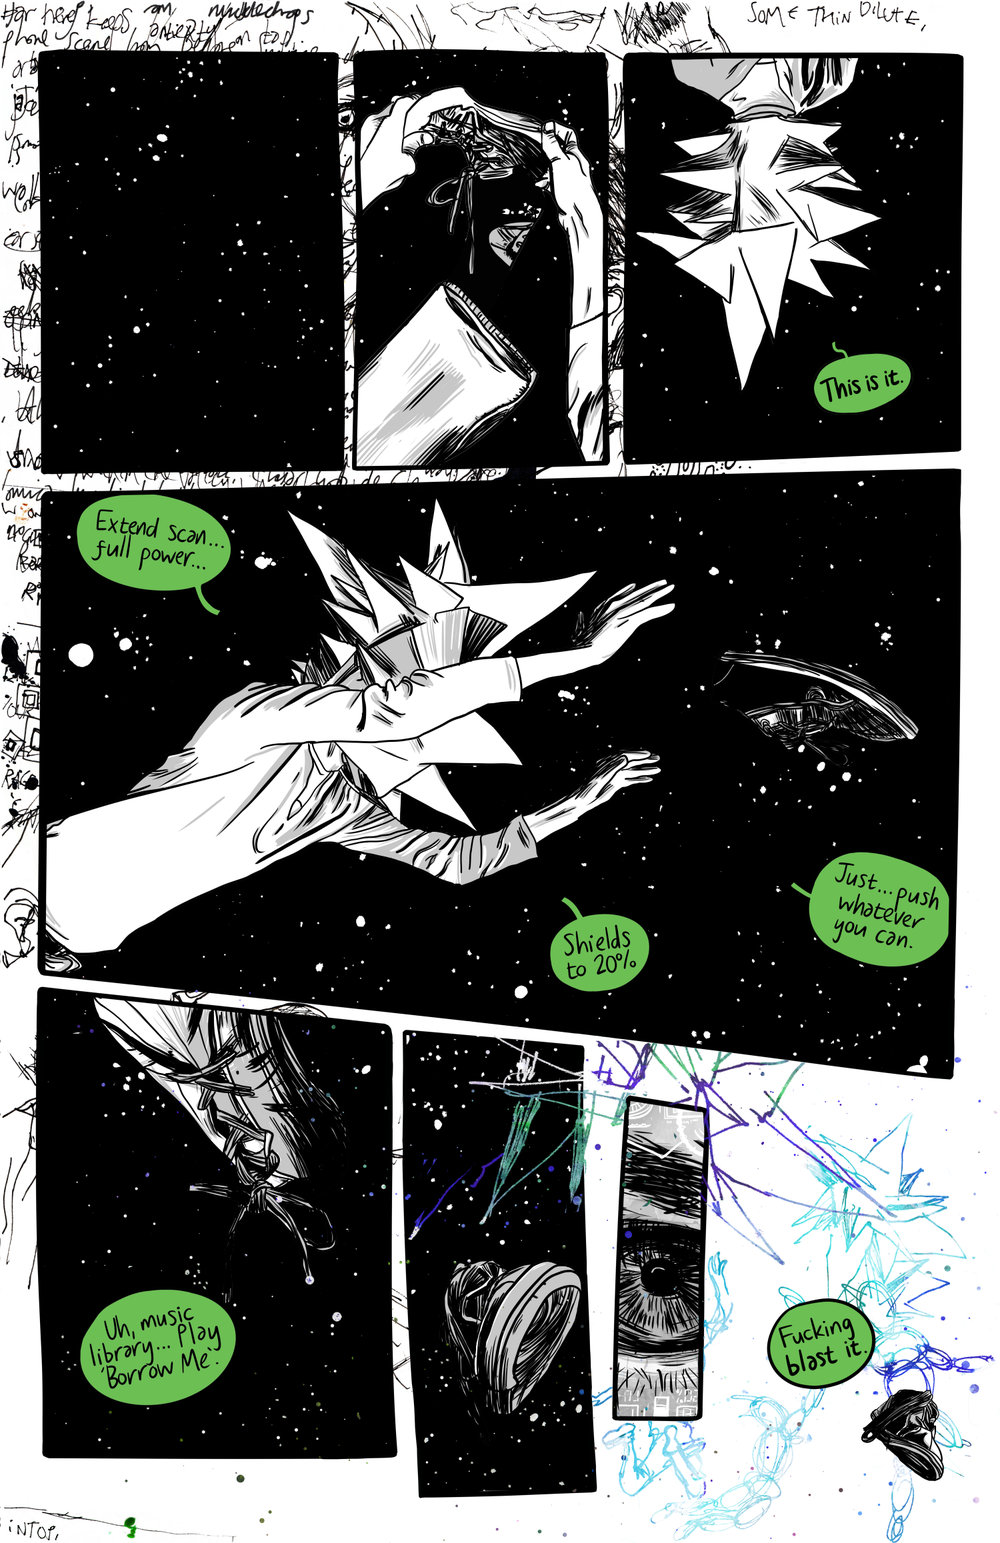 Page59a.jpg